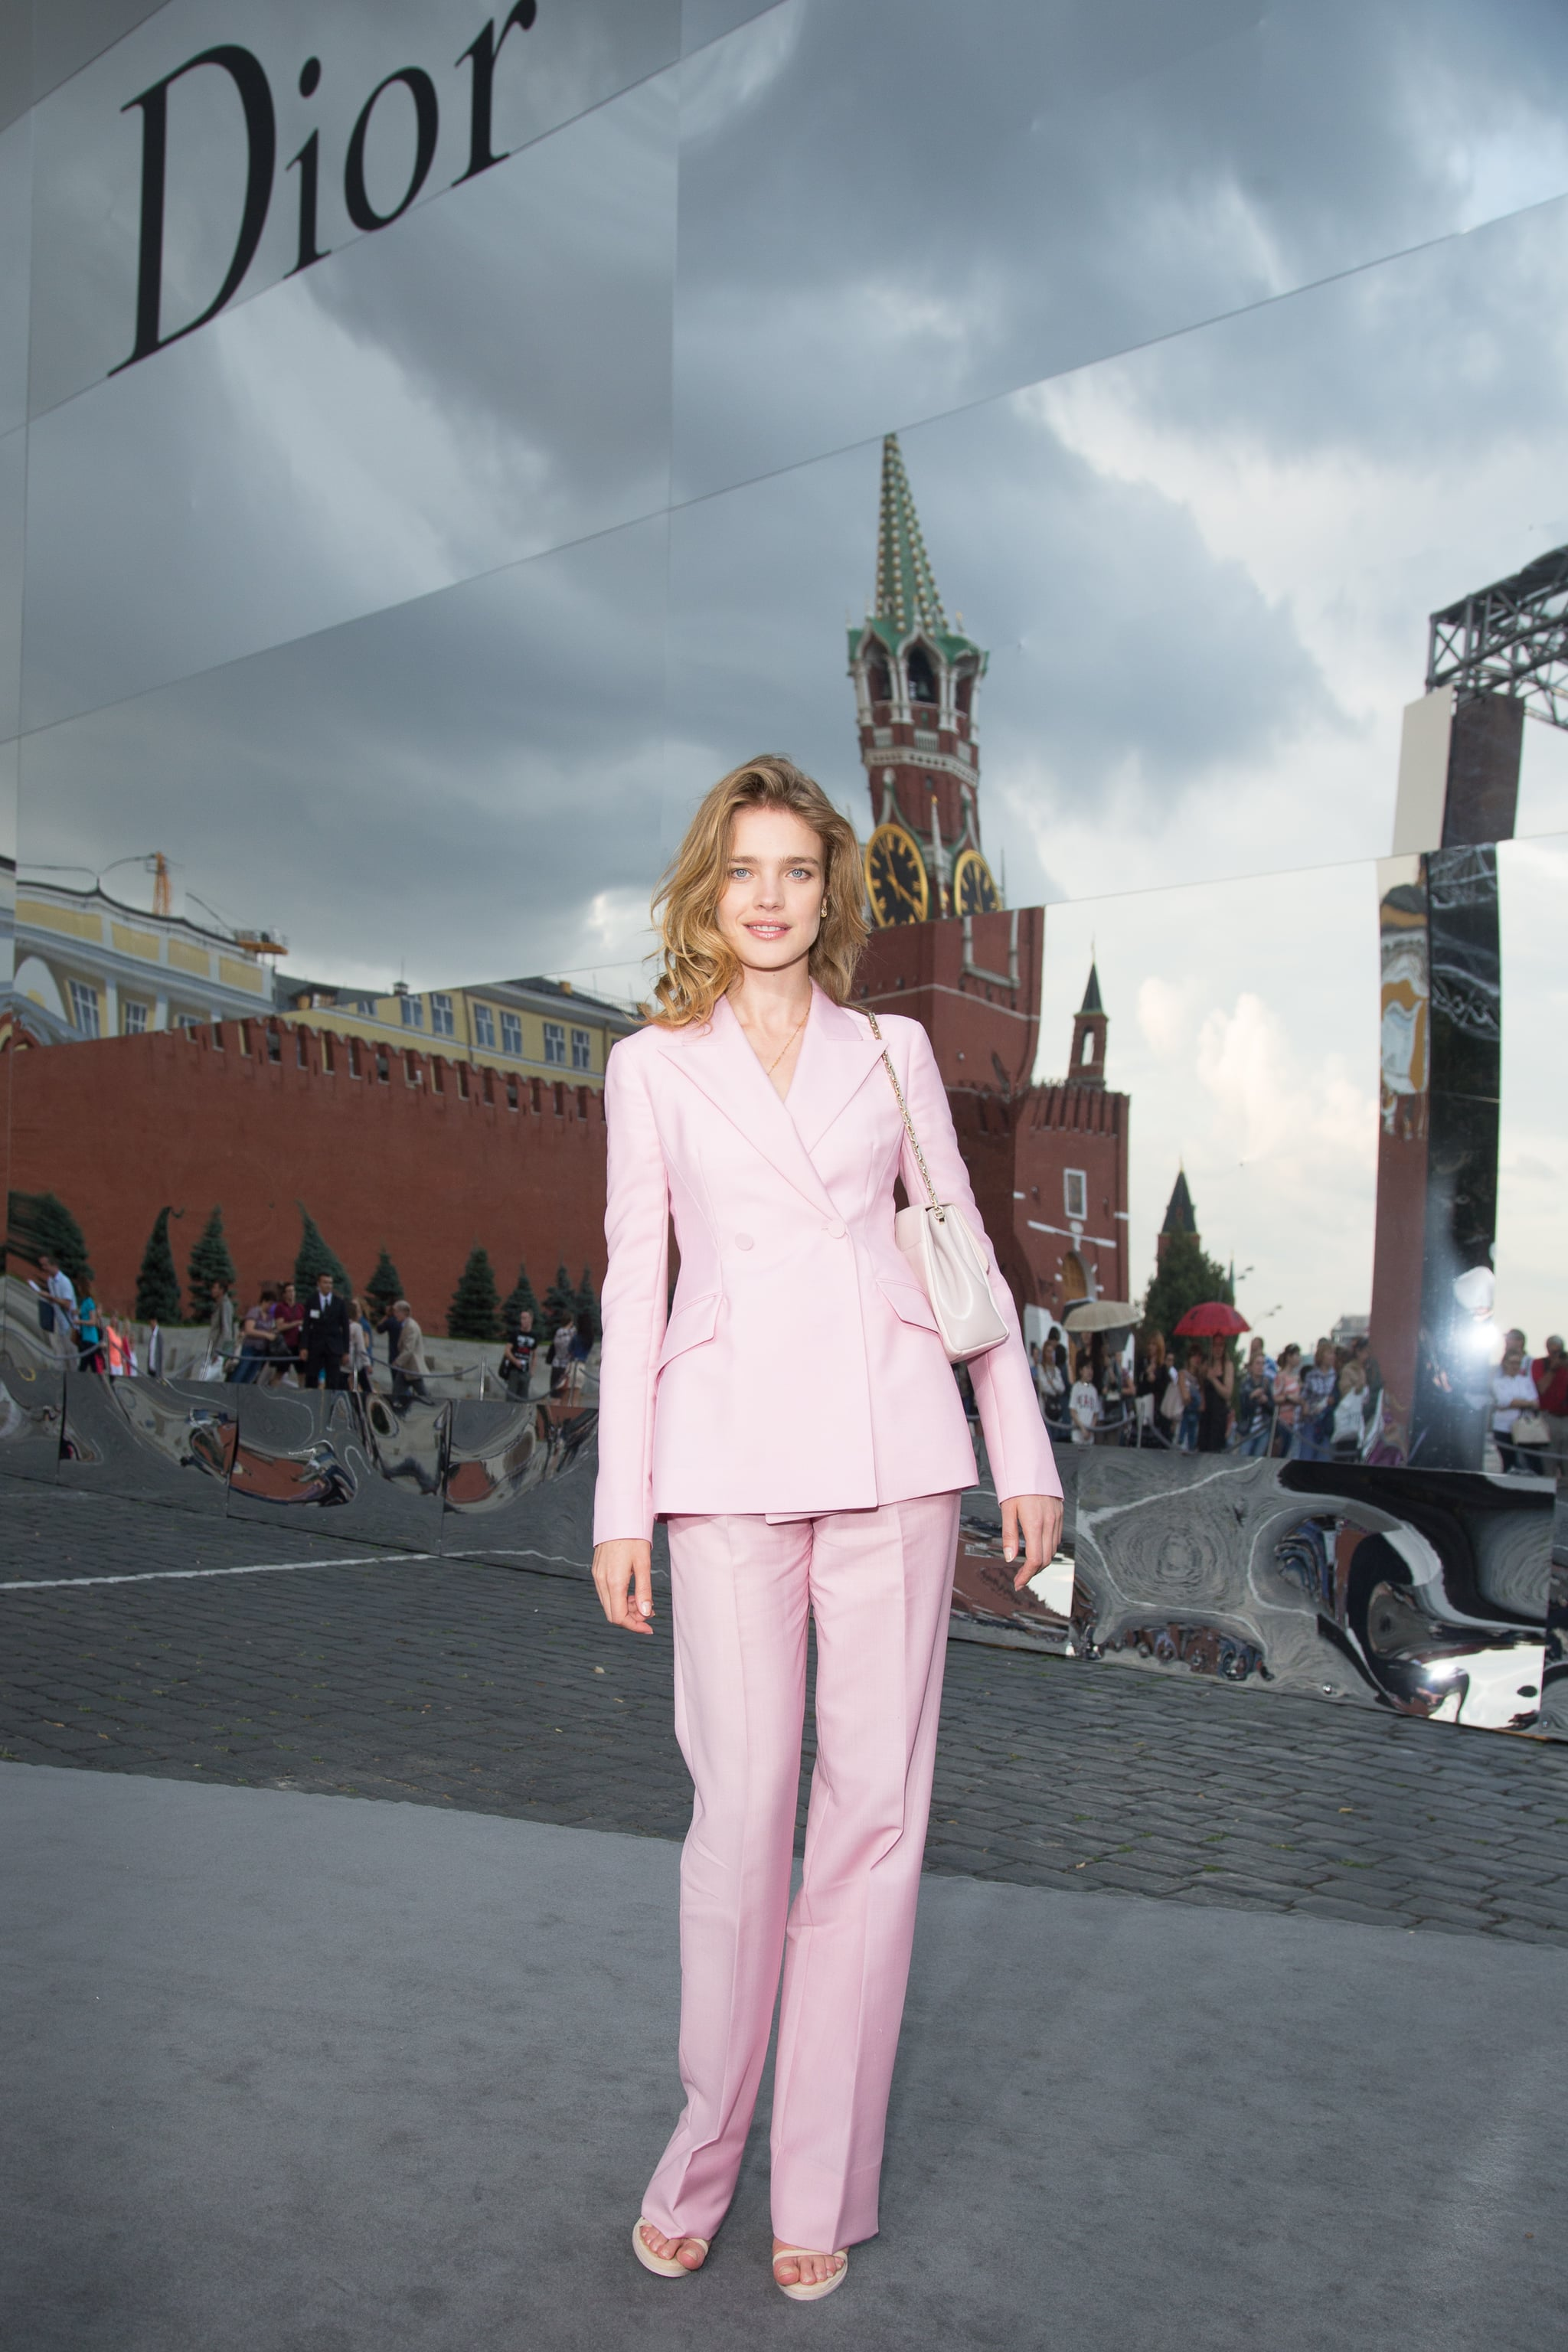 The pretty in pink model, Natalia Vodianova, suited up for Christian Dior's Moscow runway show.